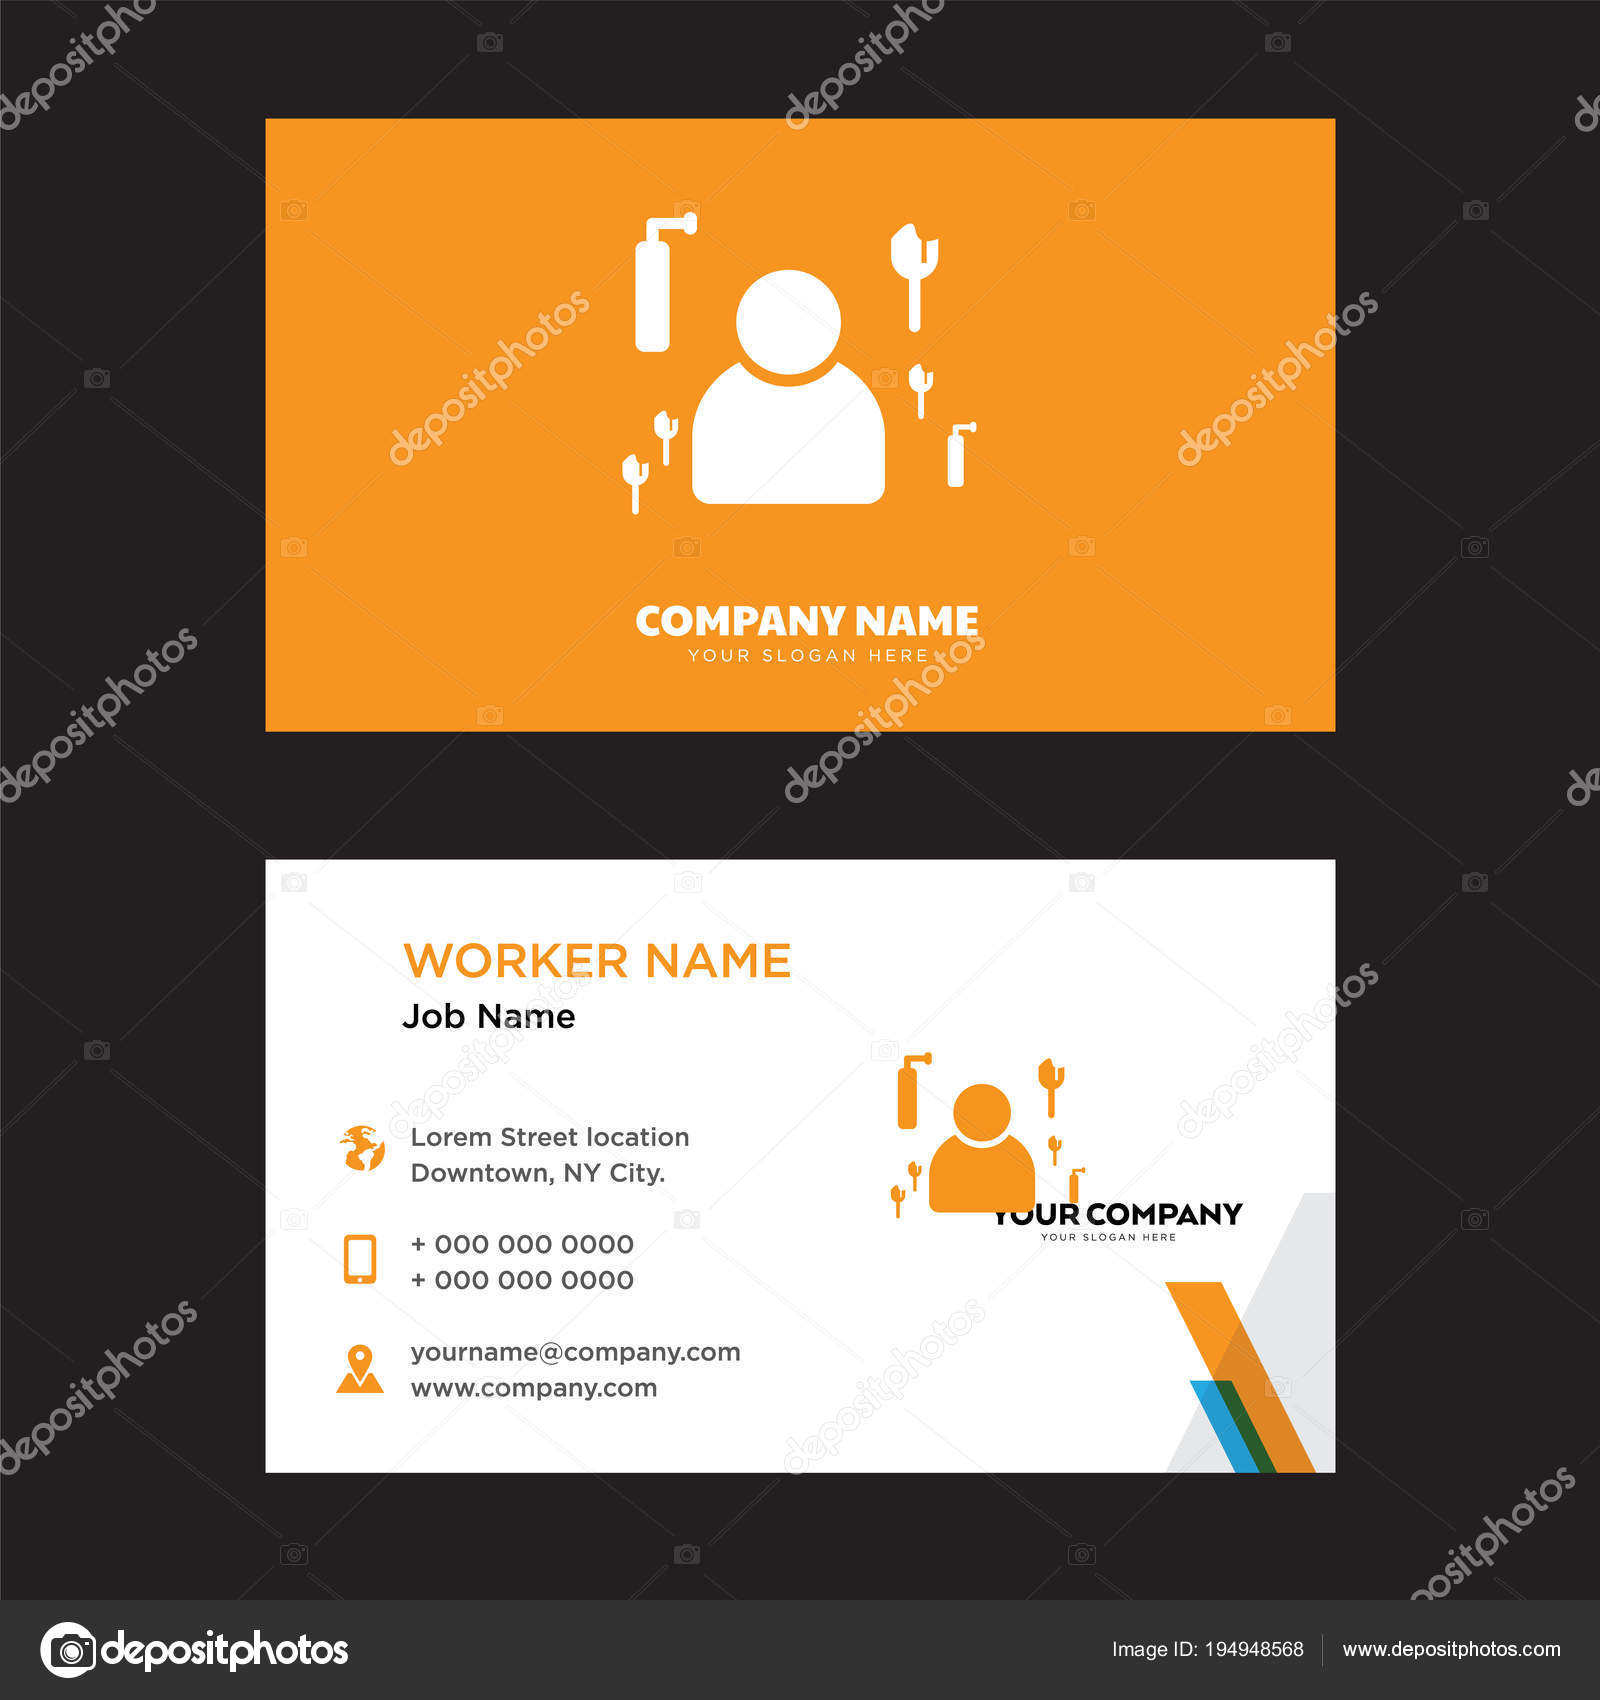 Maid business card design — Stock Vector © vector_best #194948568